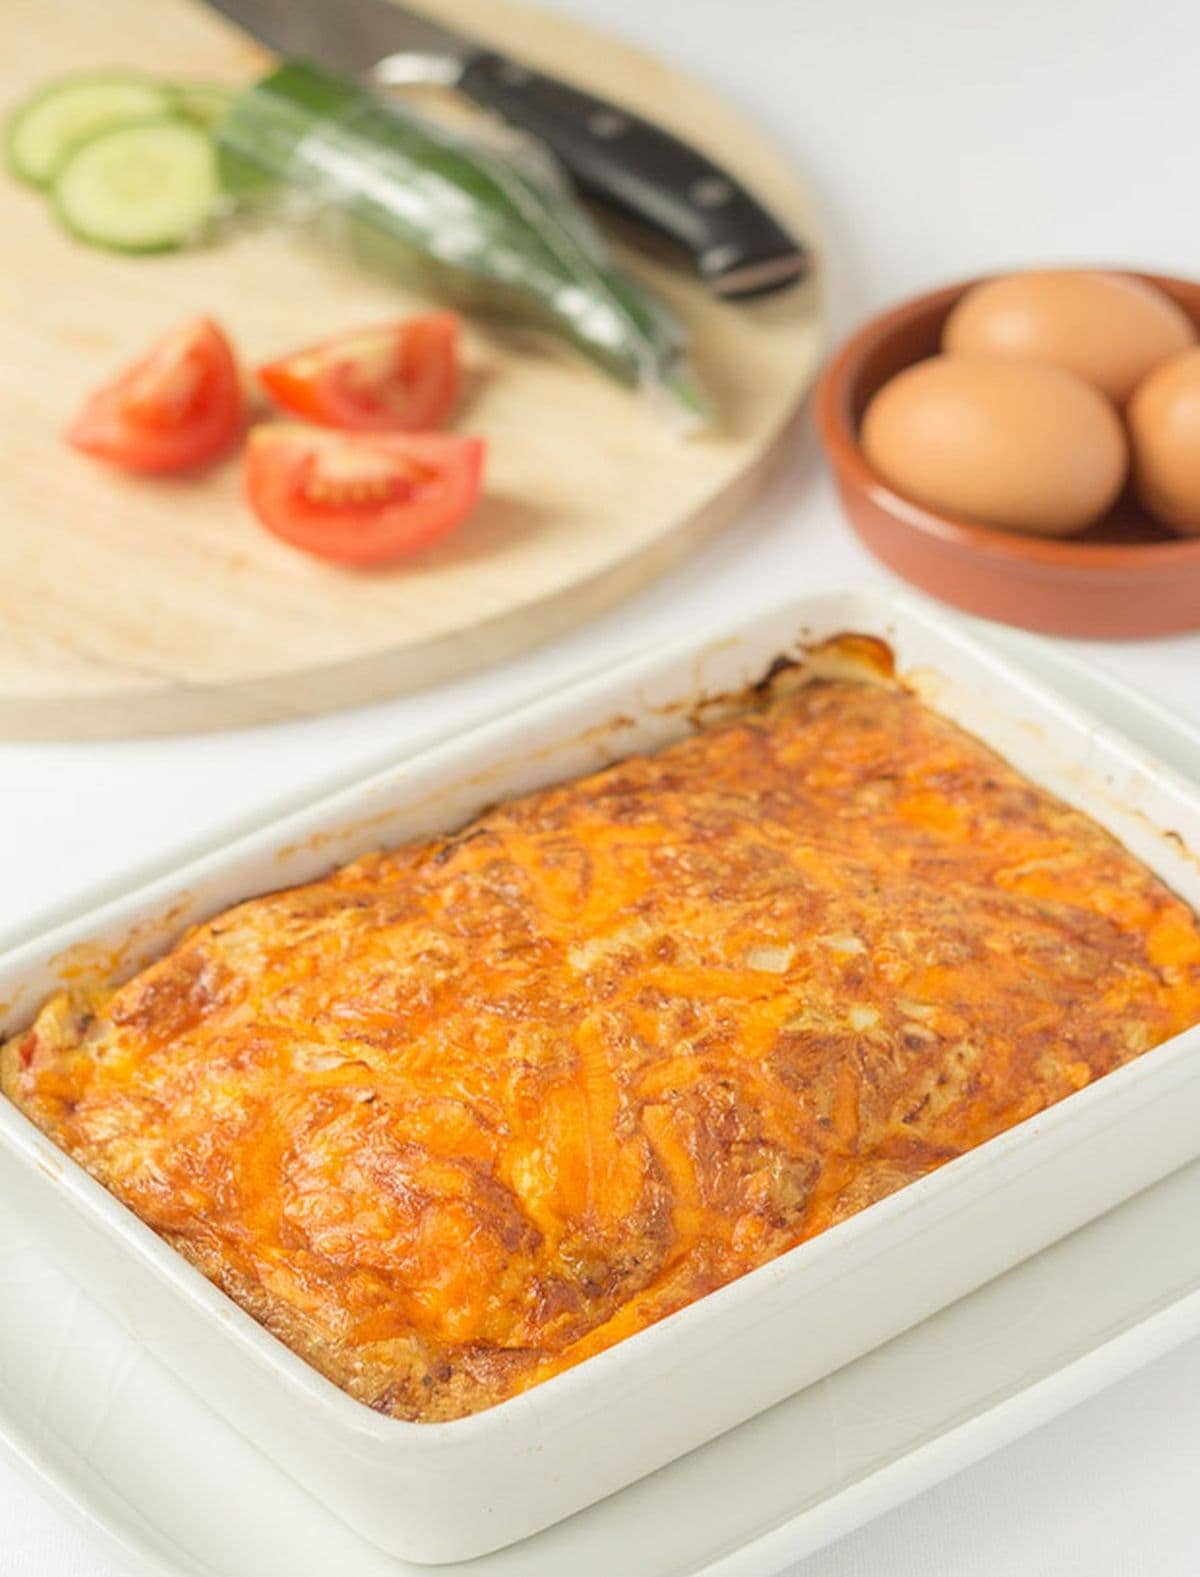 A casserole dish of cooked baked cheese and tomato omelette just removed from oven. Chopping board with salad on and dish of eggs in the background.